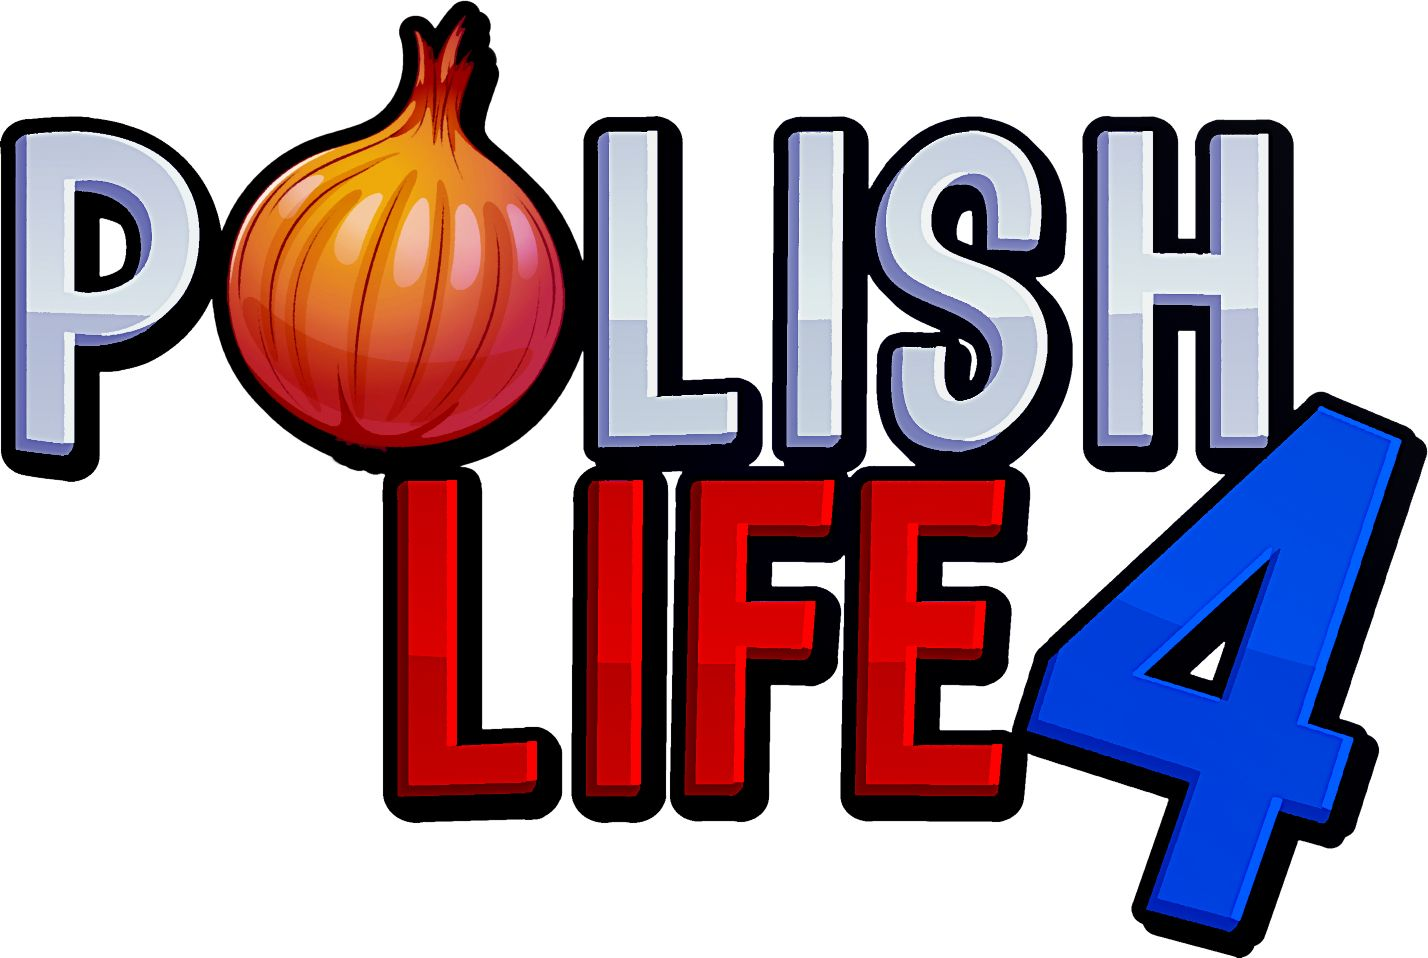 logo-polishlife-jpg.jpg